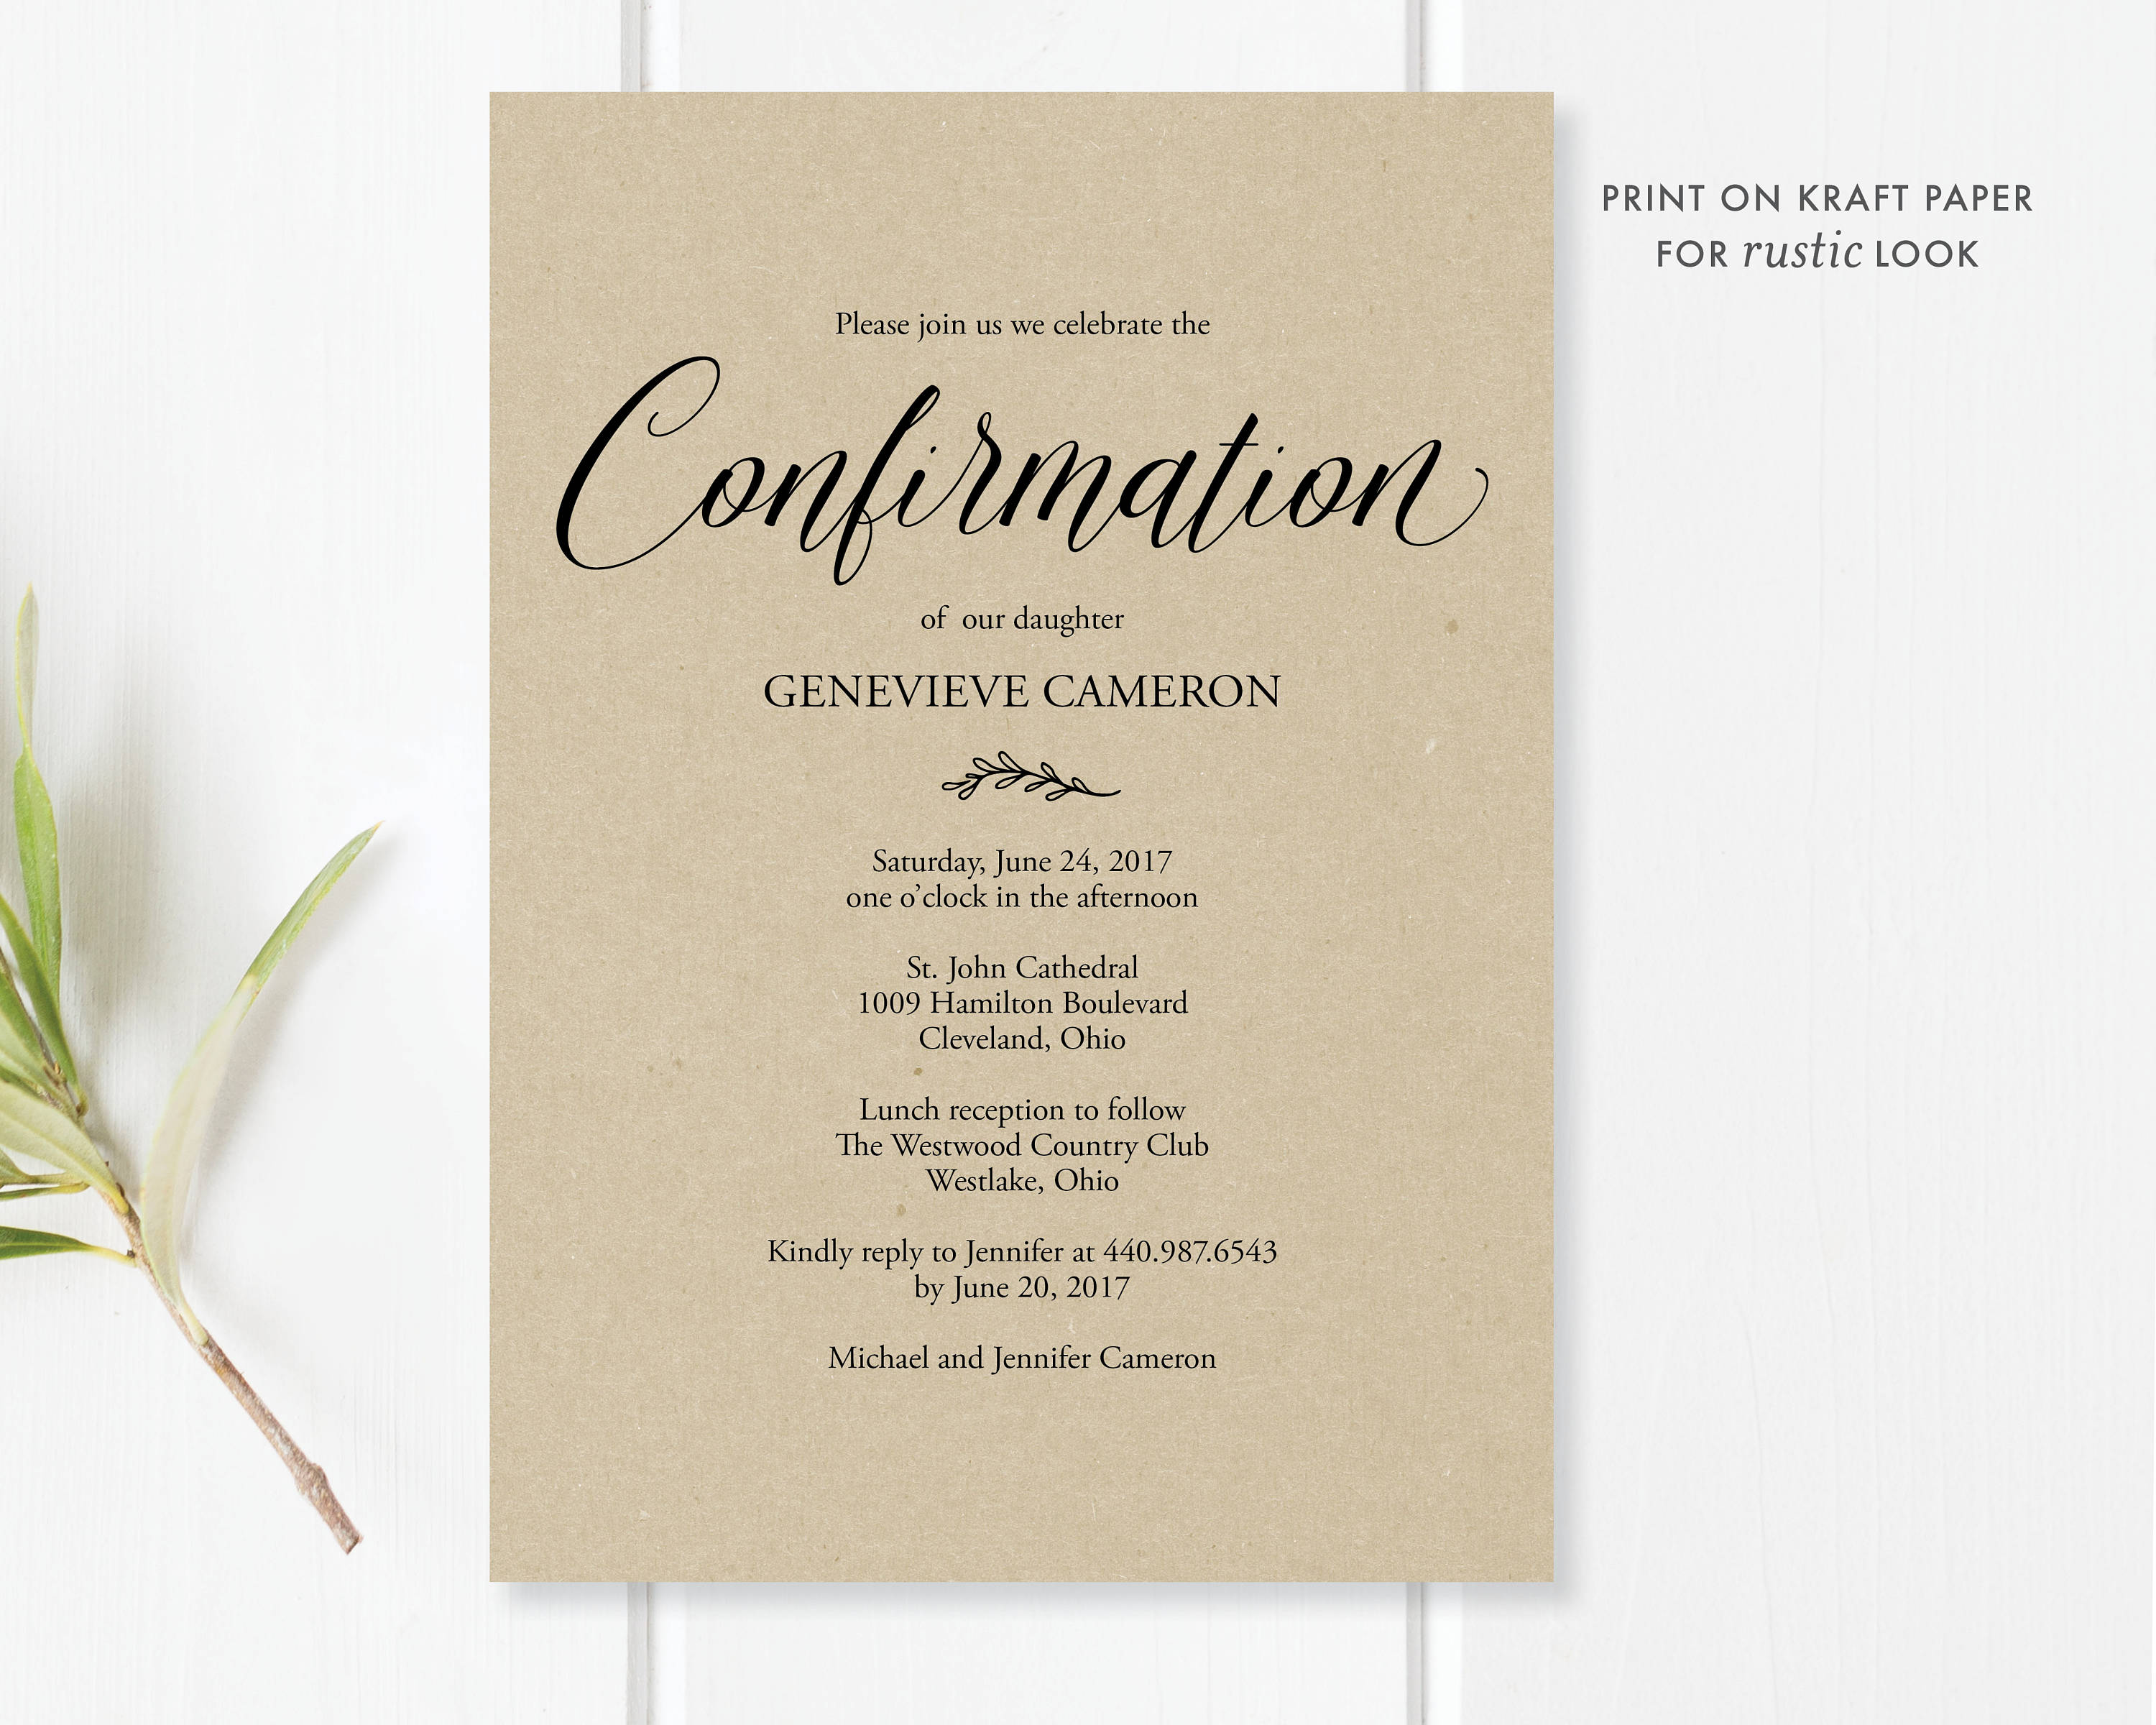 Confirmation invitation printable editable pdf template zoom monicamarmolfo Image collections